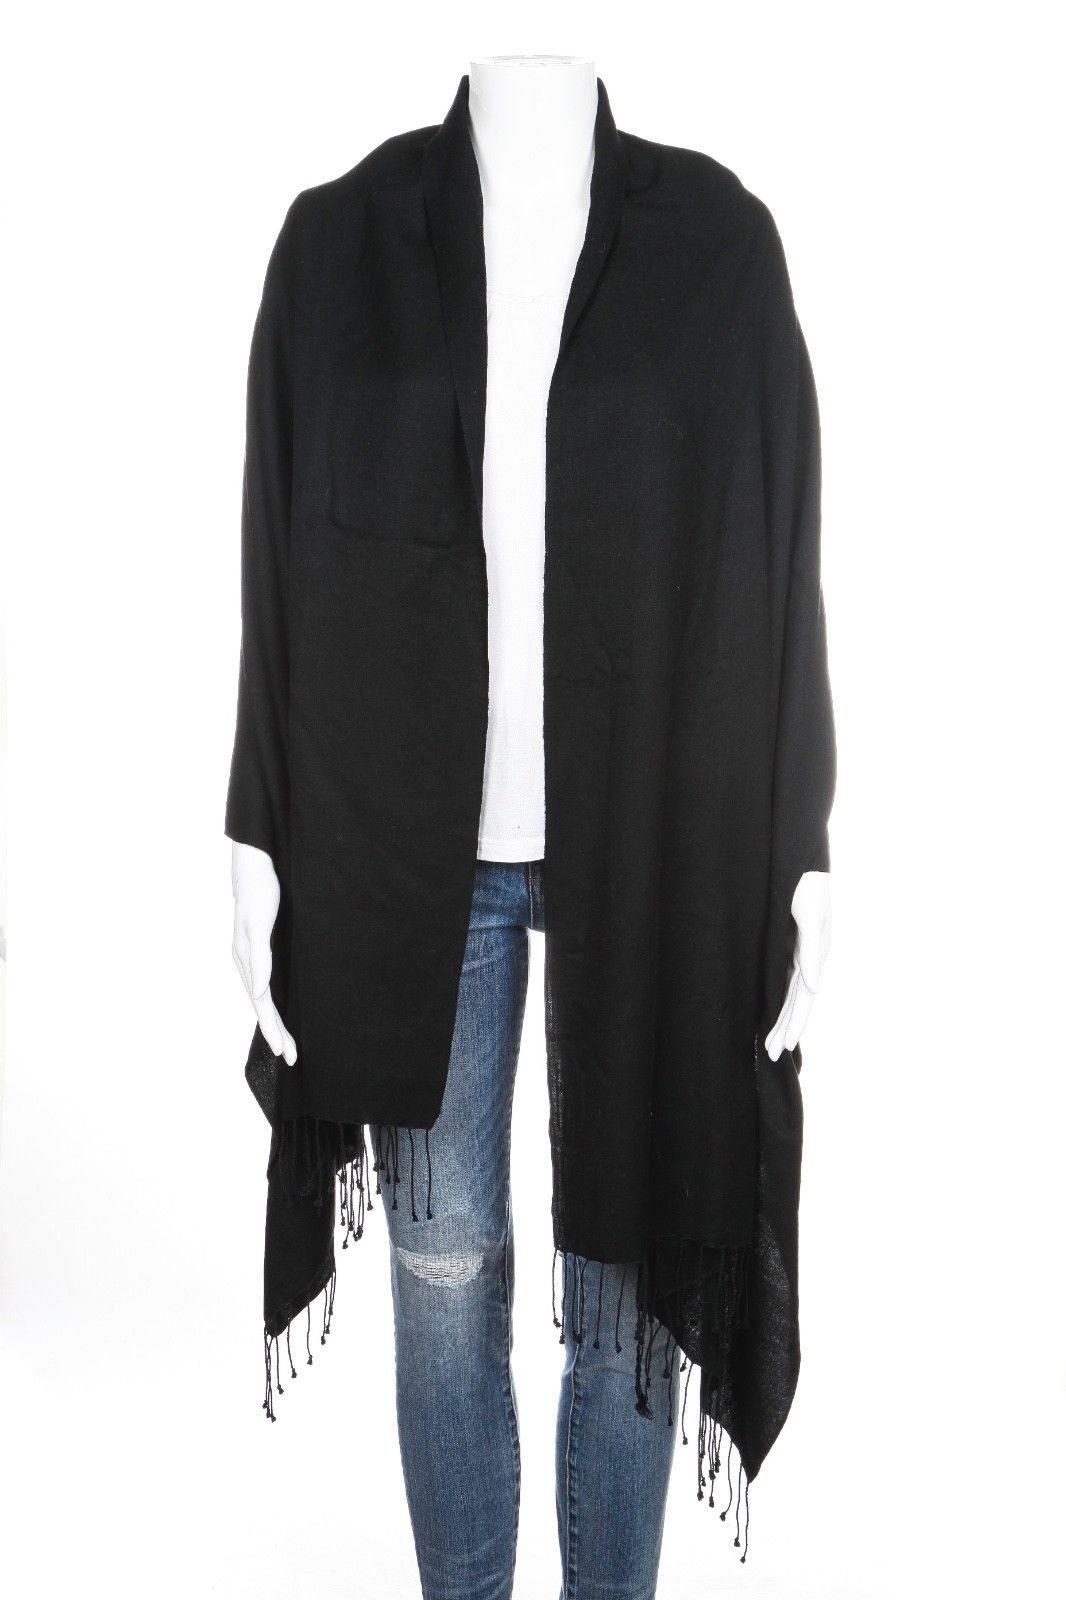 PASHMINA Shawl Silk Wool Black Scarf Fringe Rectangular